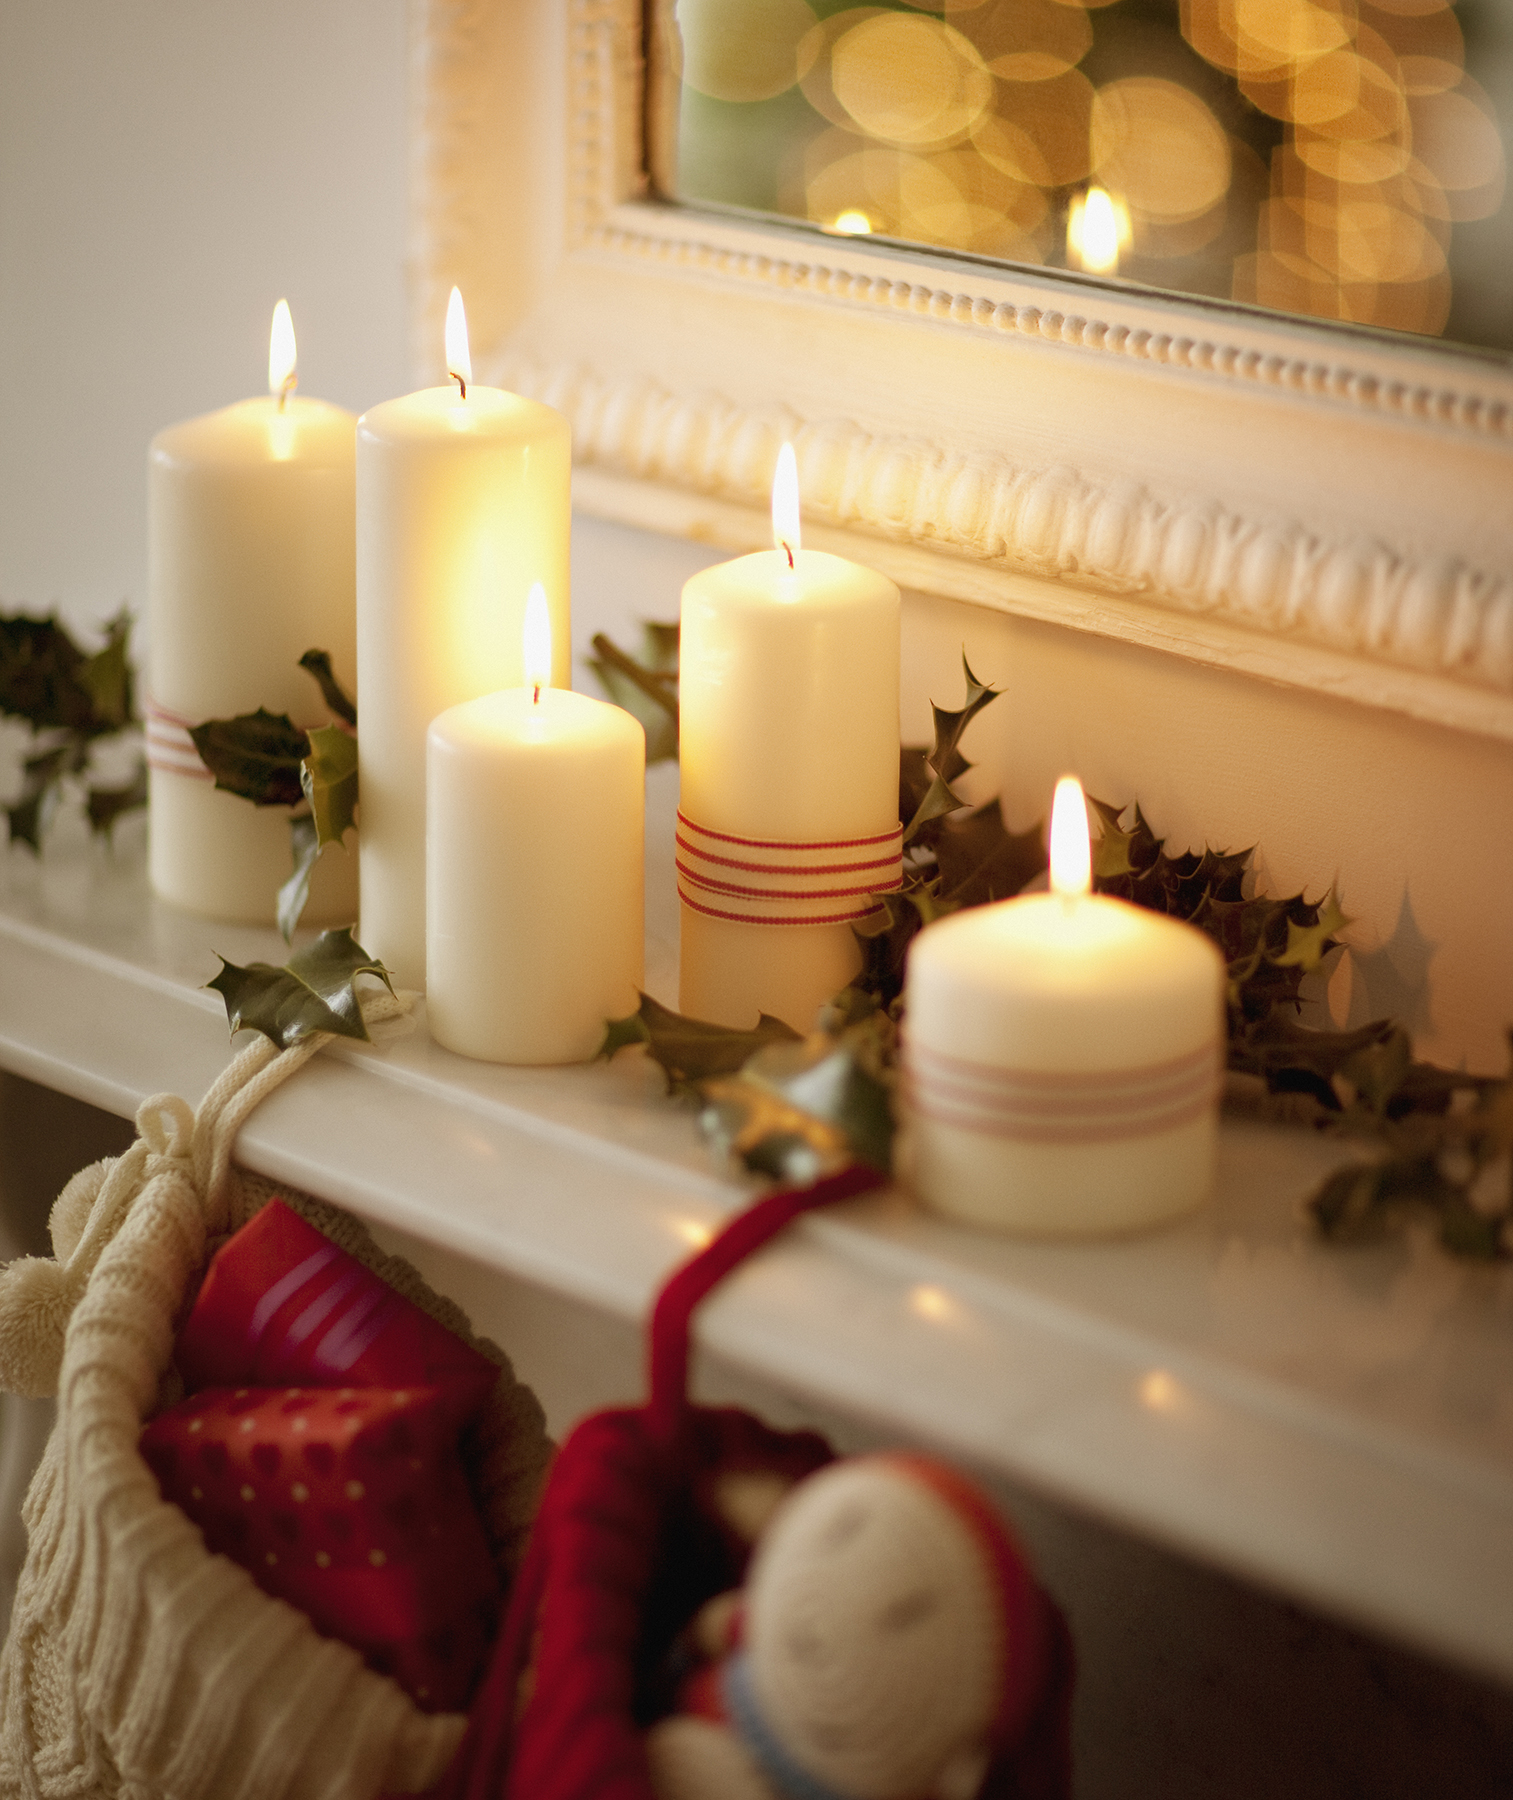 Candles on Christmas mantel